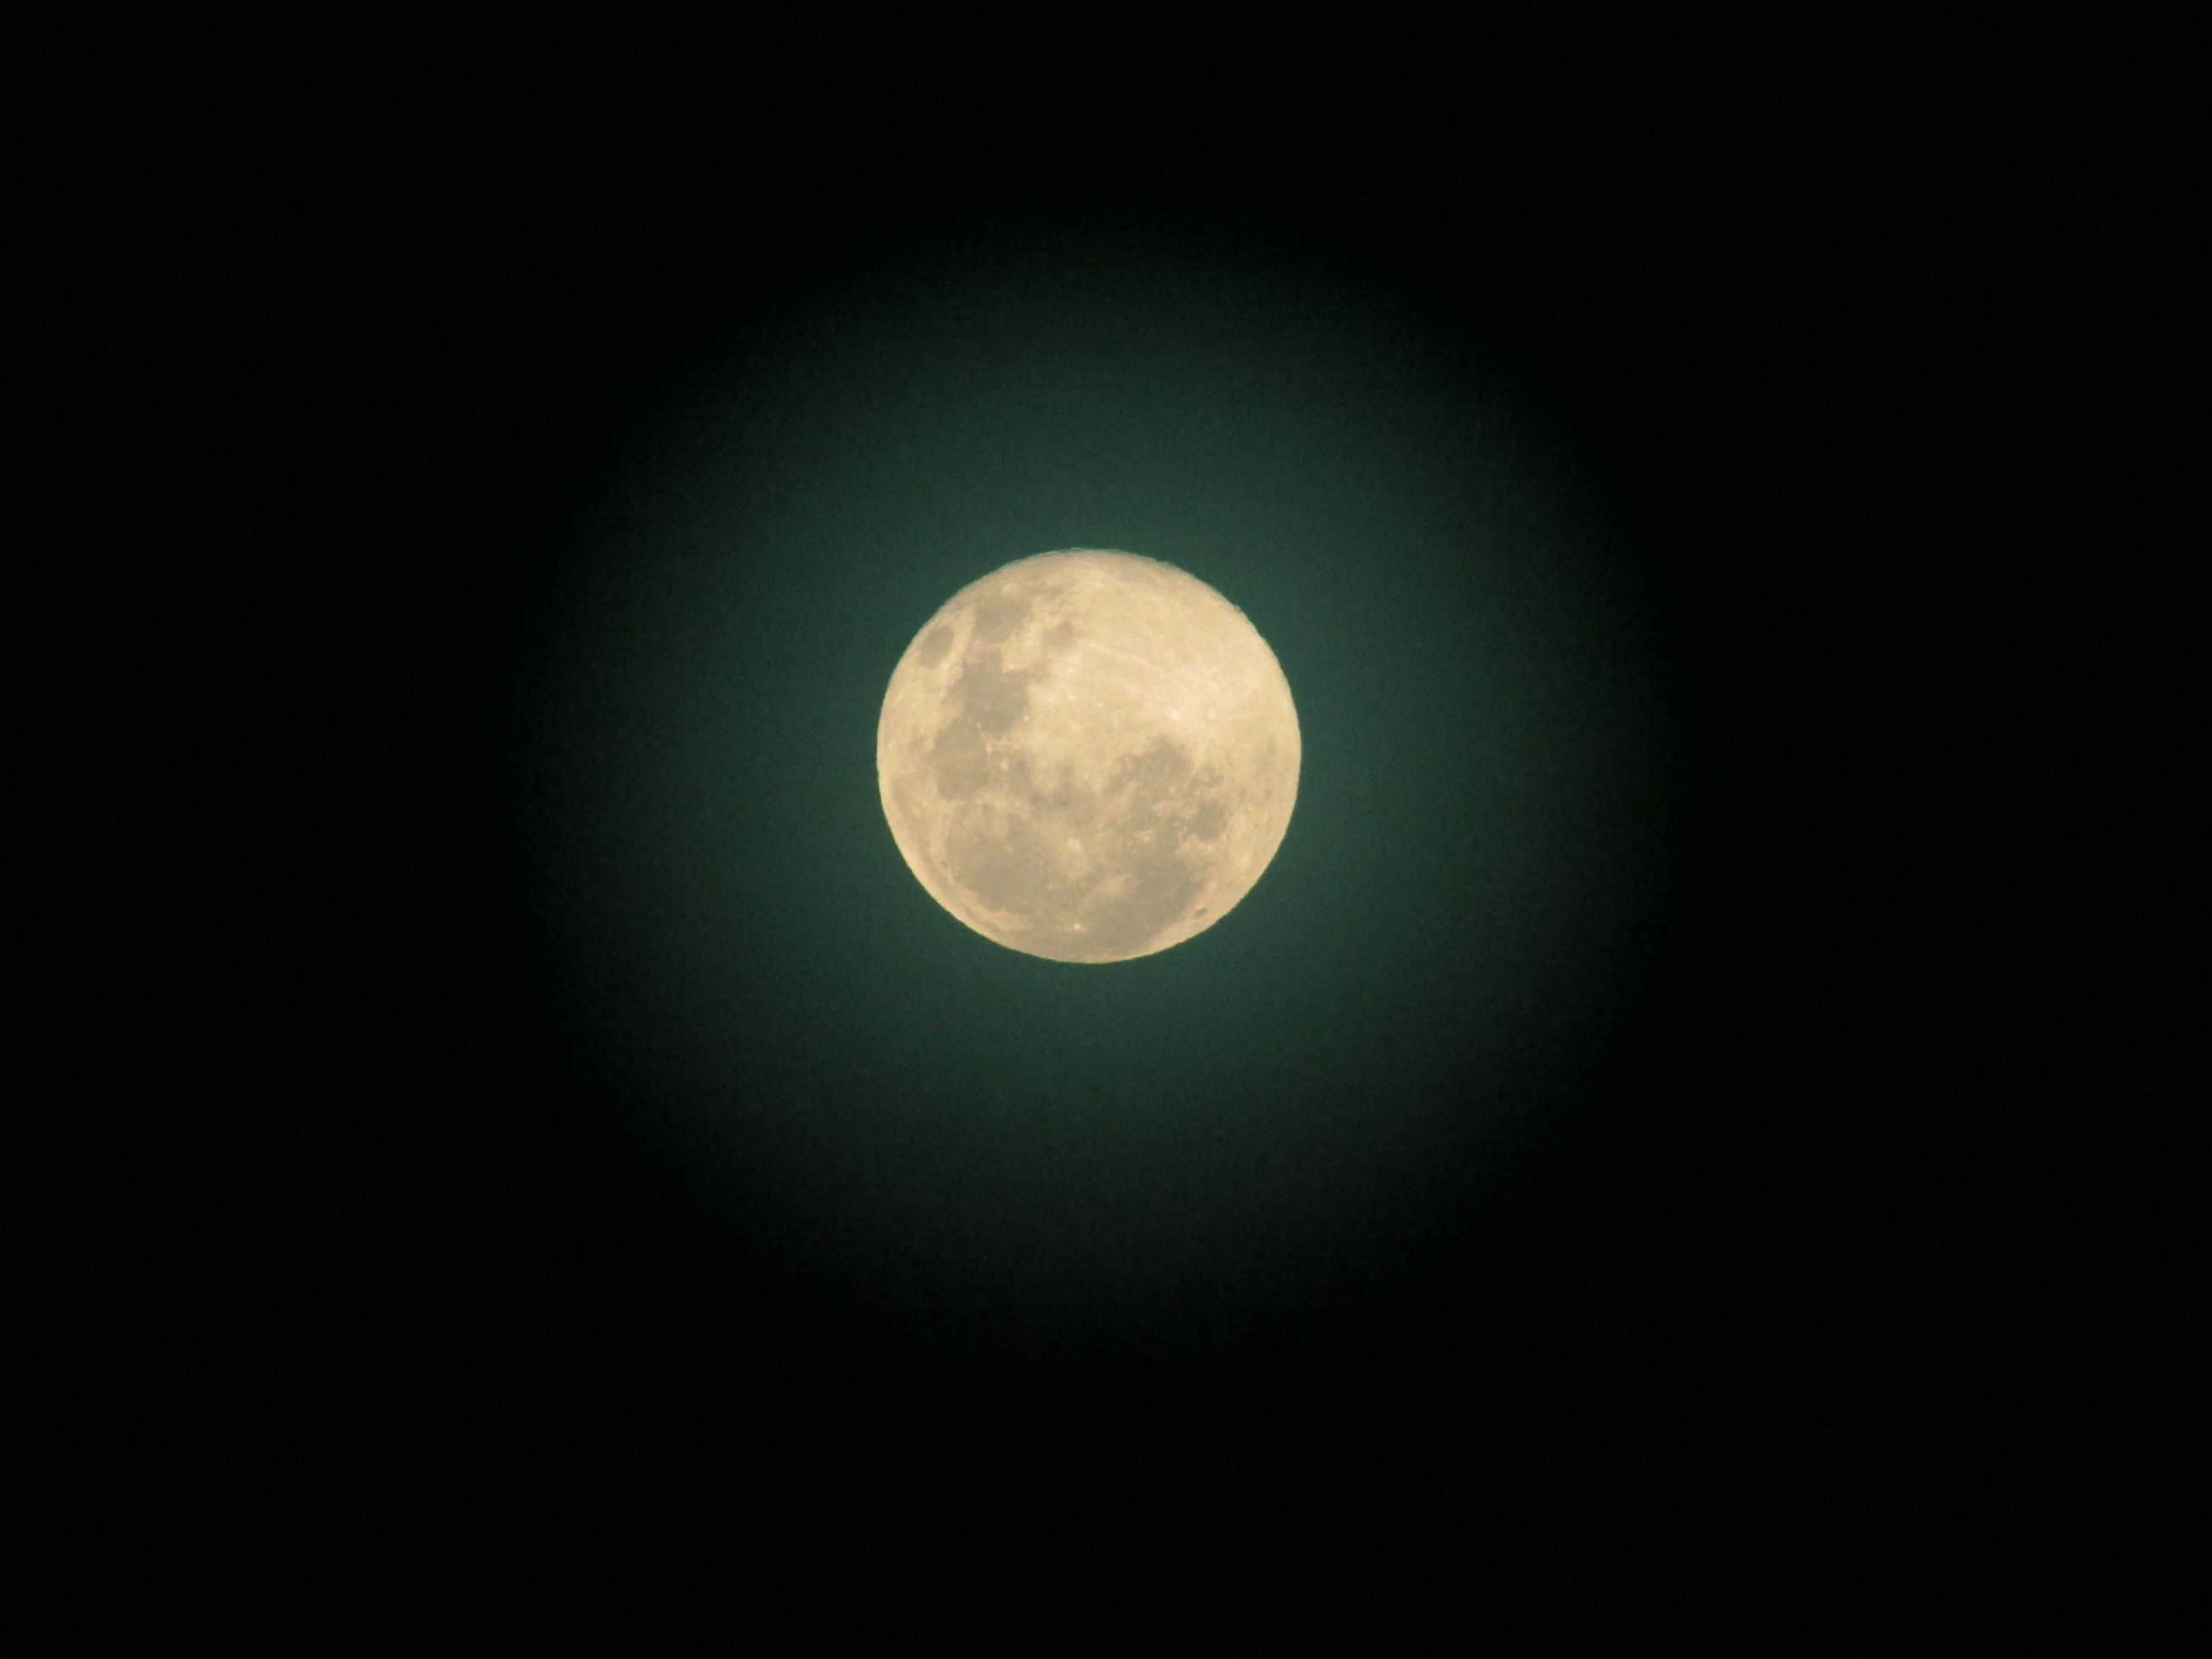 moon, astronomy, full moon, planetary moon, night, moon surface, circle, beauty in nature, scenics, tranquil scene, tranquility, low angle view, sky, discovery, space exploration, nature, sphere, majestic, dark, copy space